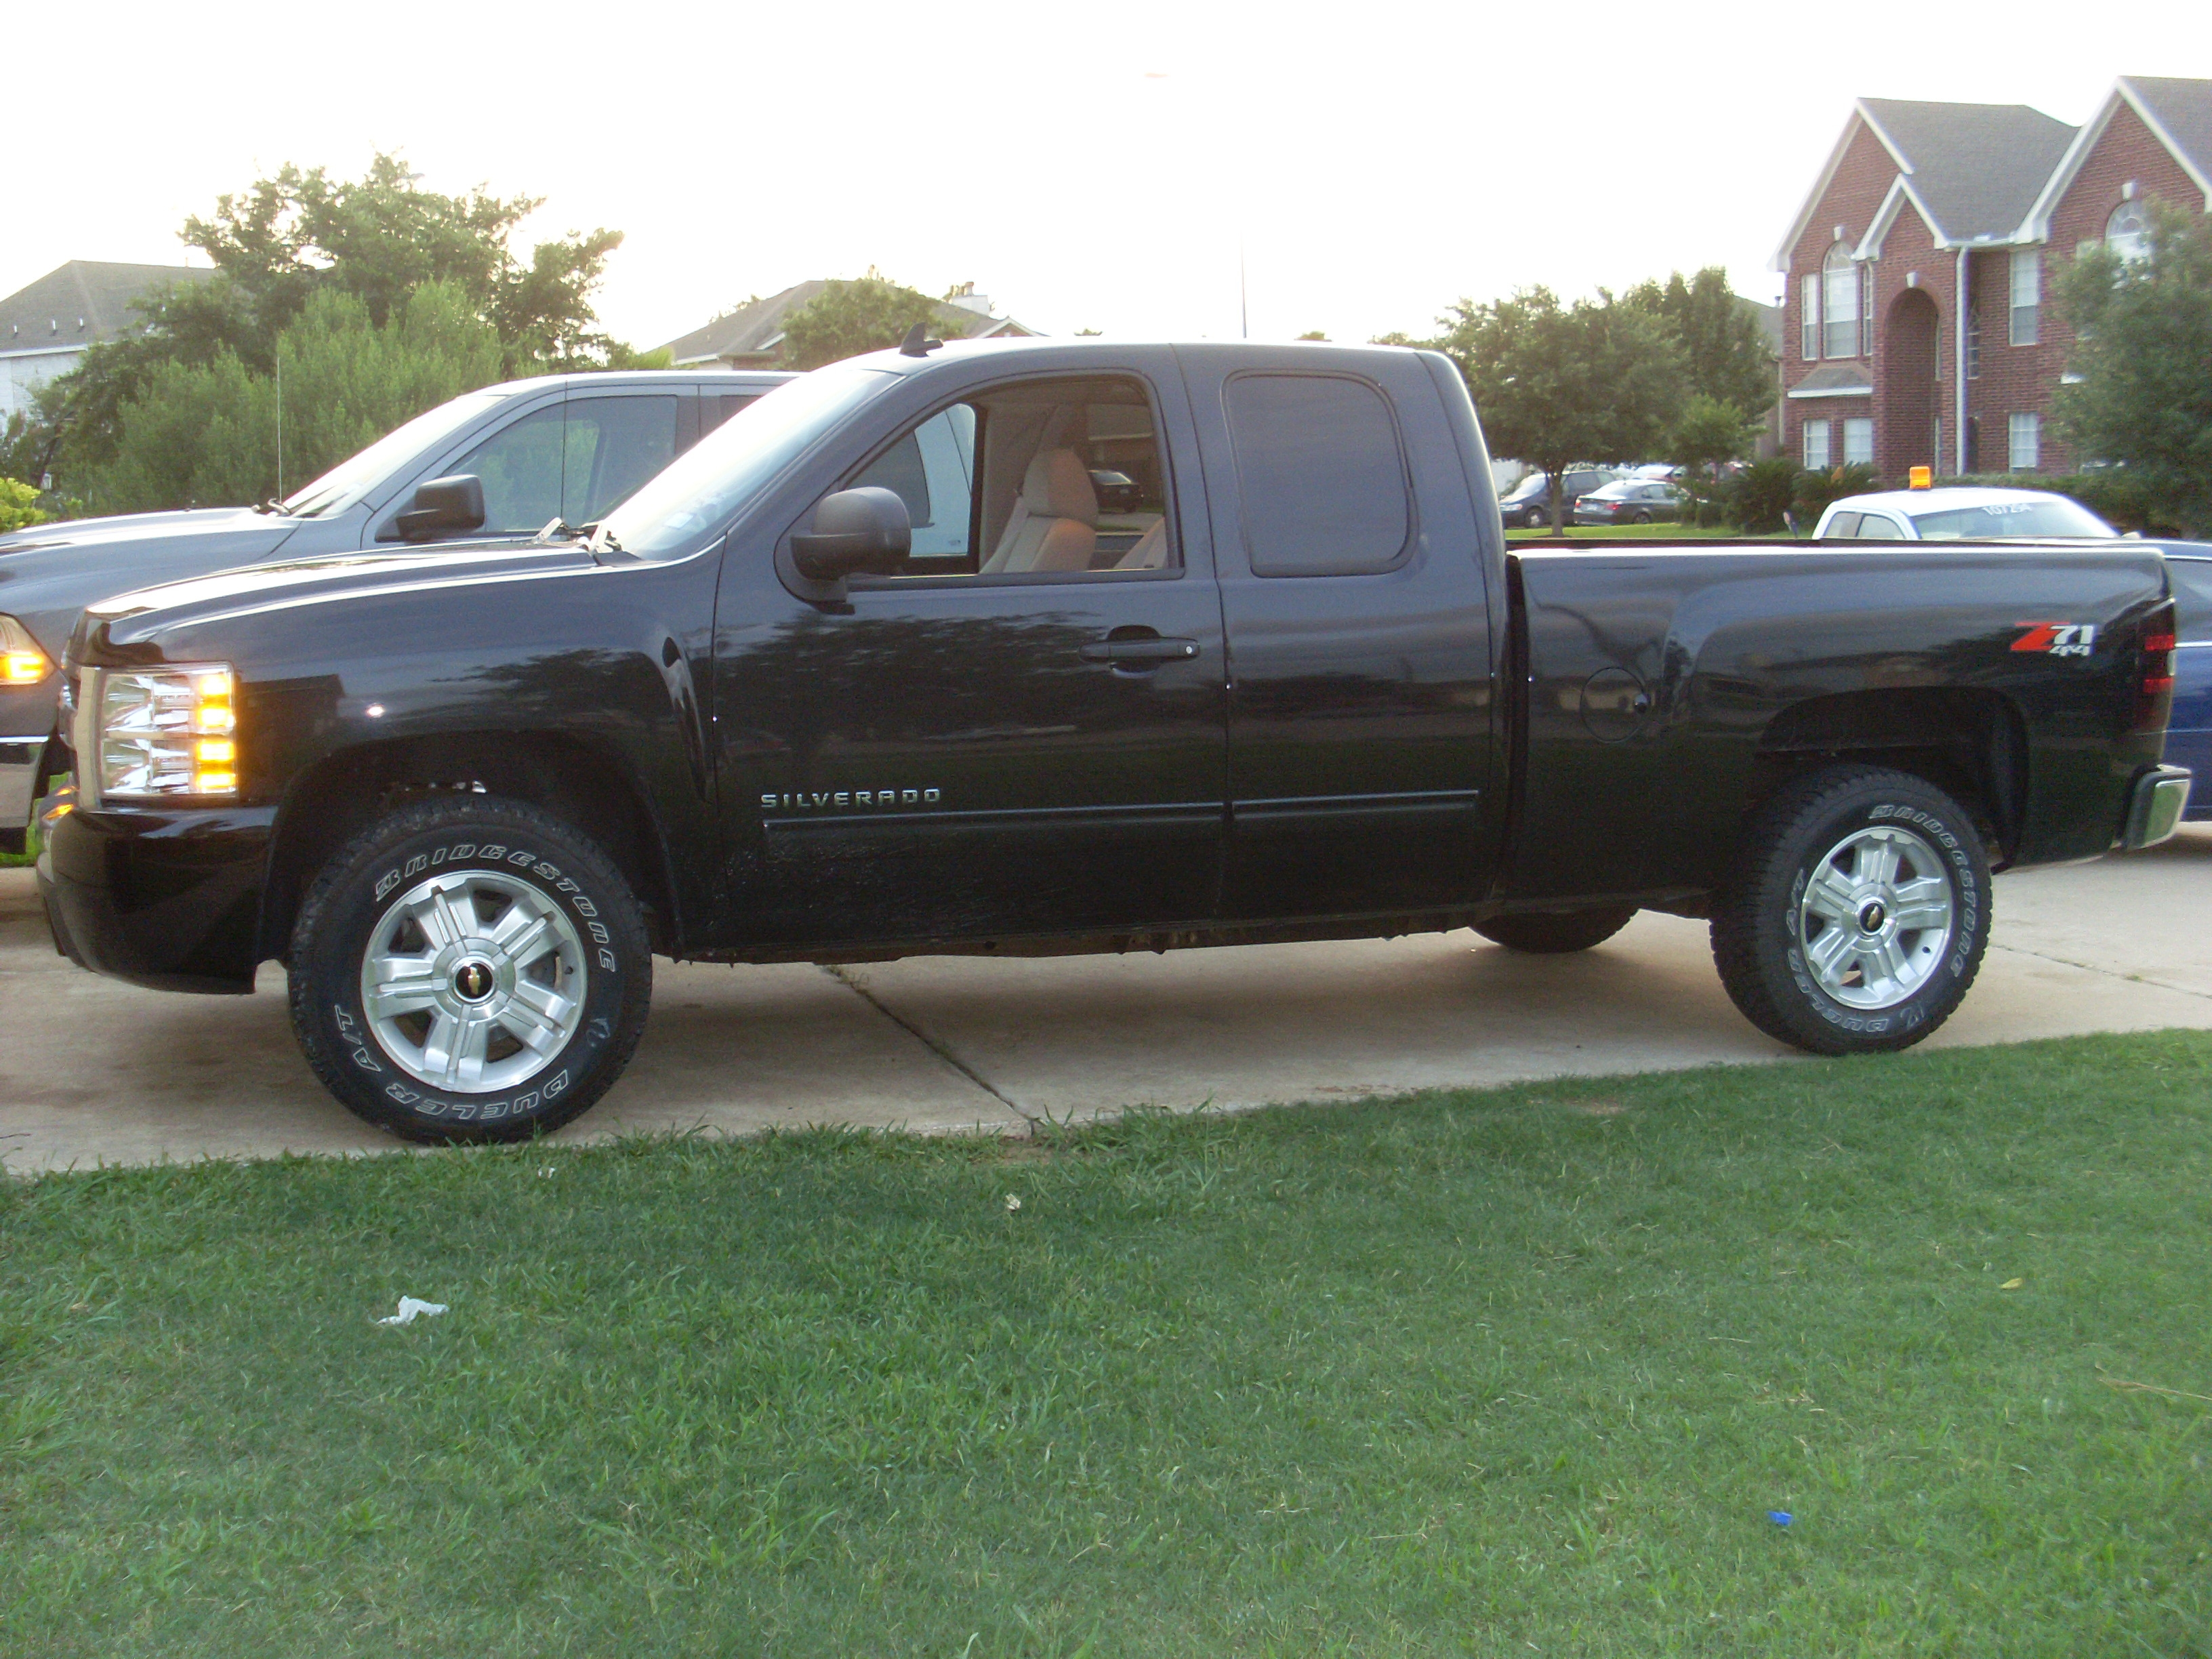 ronniesk8 2009 chevrolet silverado 1500 extended cab specs photos modification info at cardomain. Black Bedroom Furniture Sets. Home Design Ideas